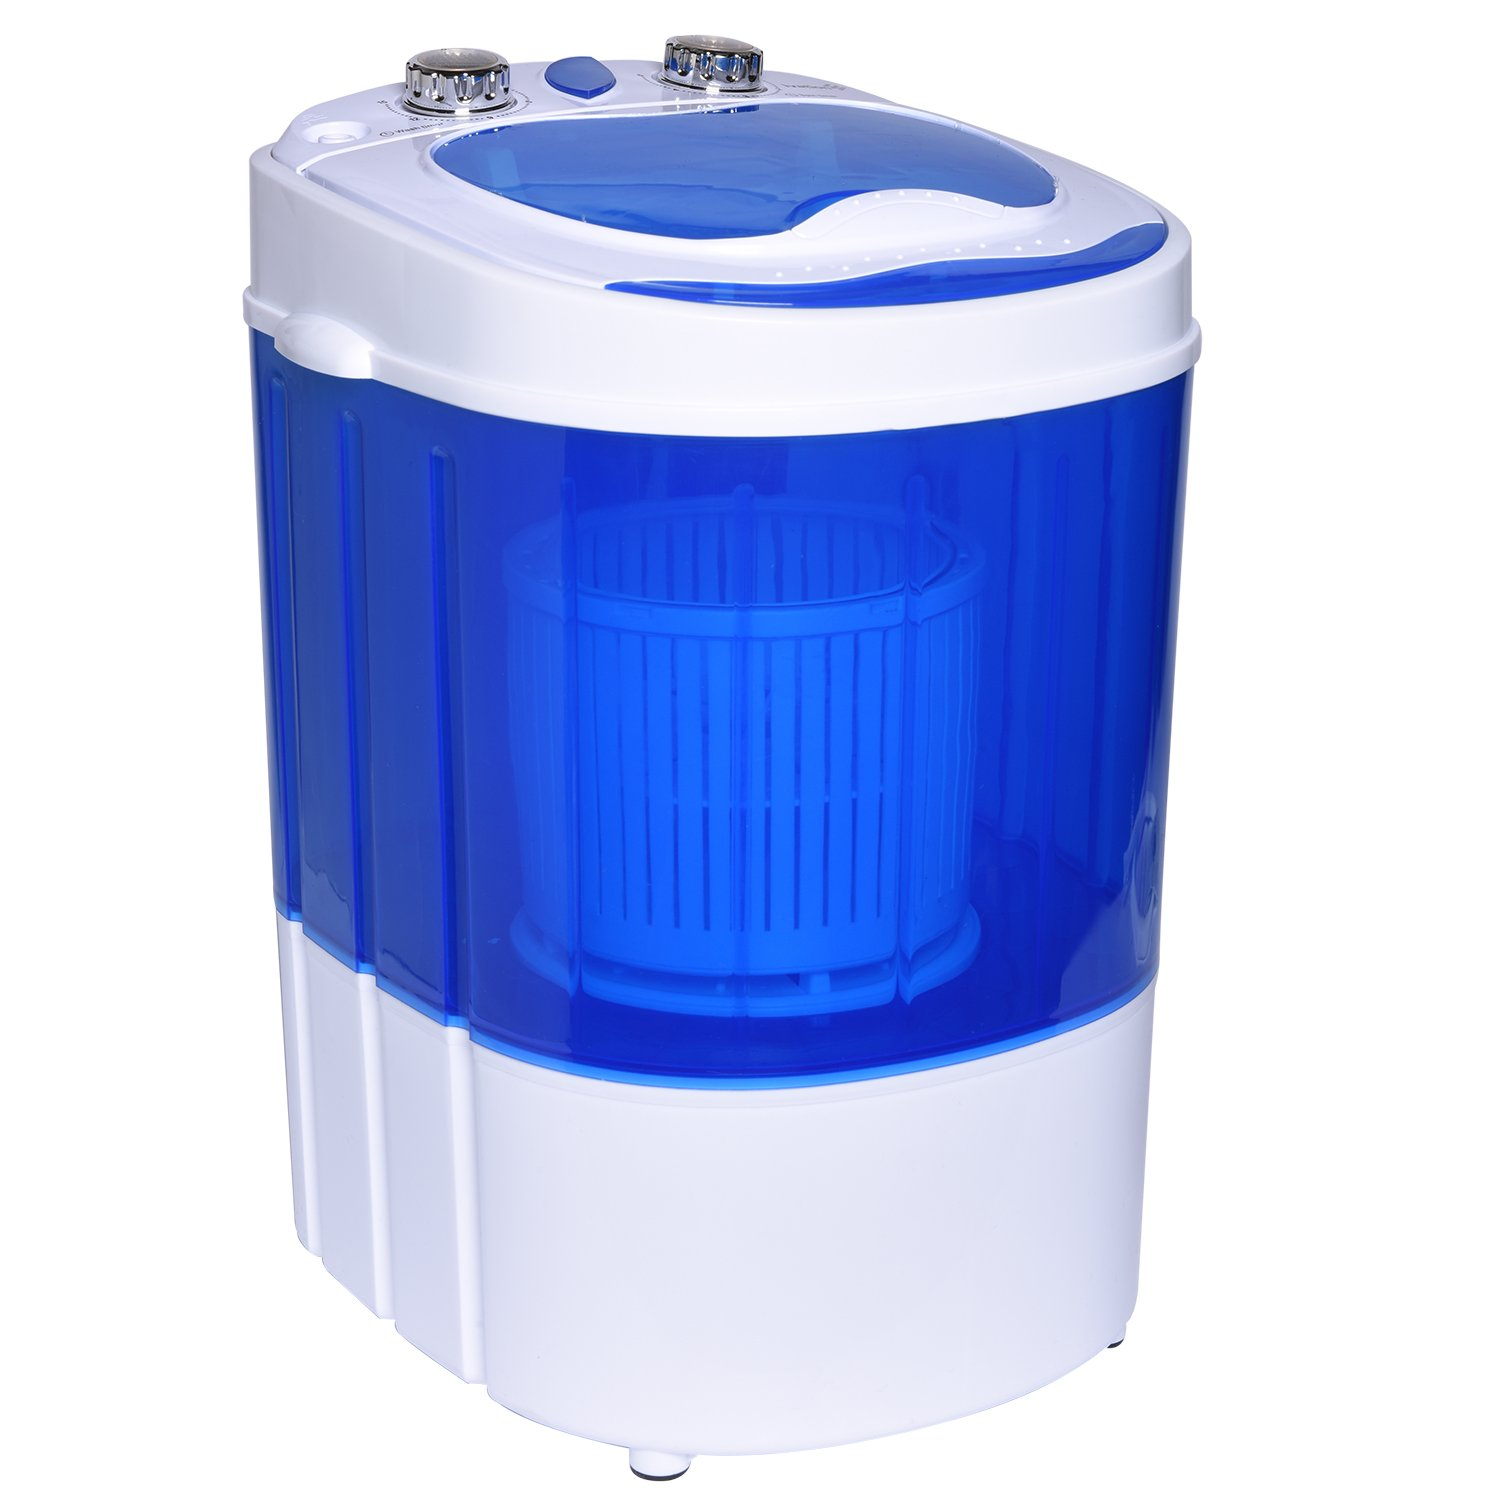 Small Laundry Machine Panda Small Compact Portable Washing Machine 79lbs Capacity With